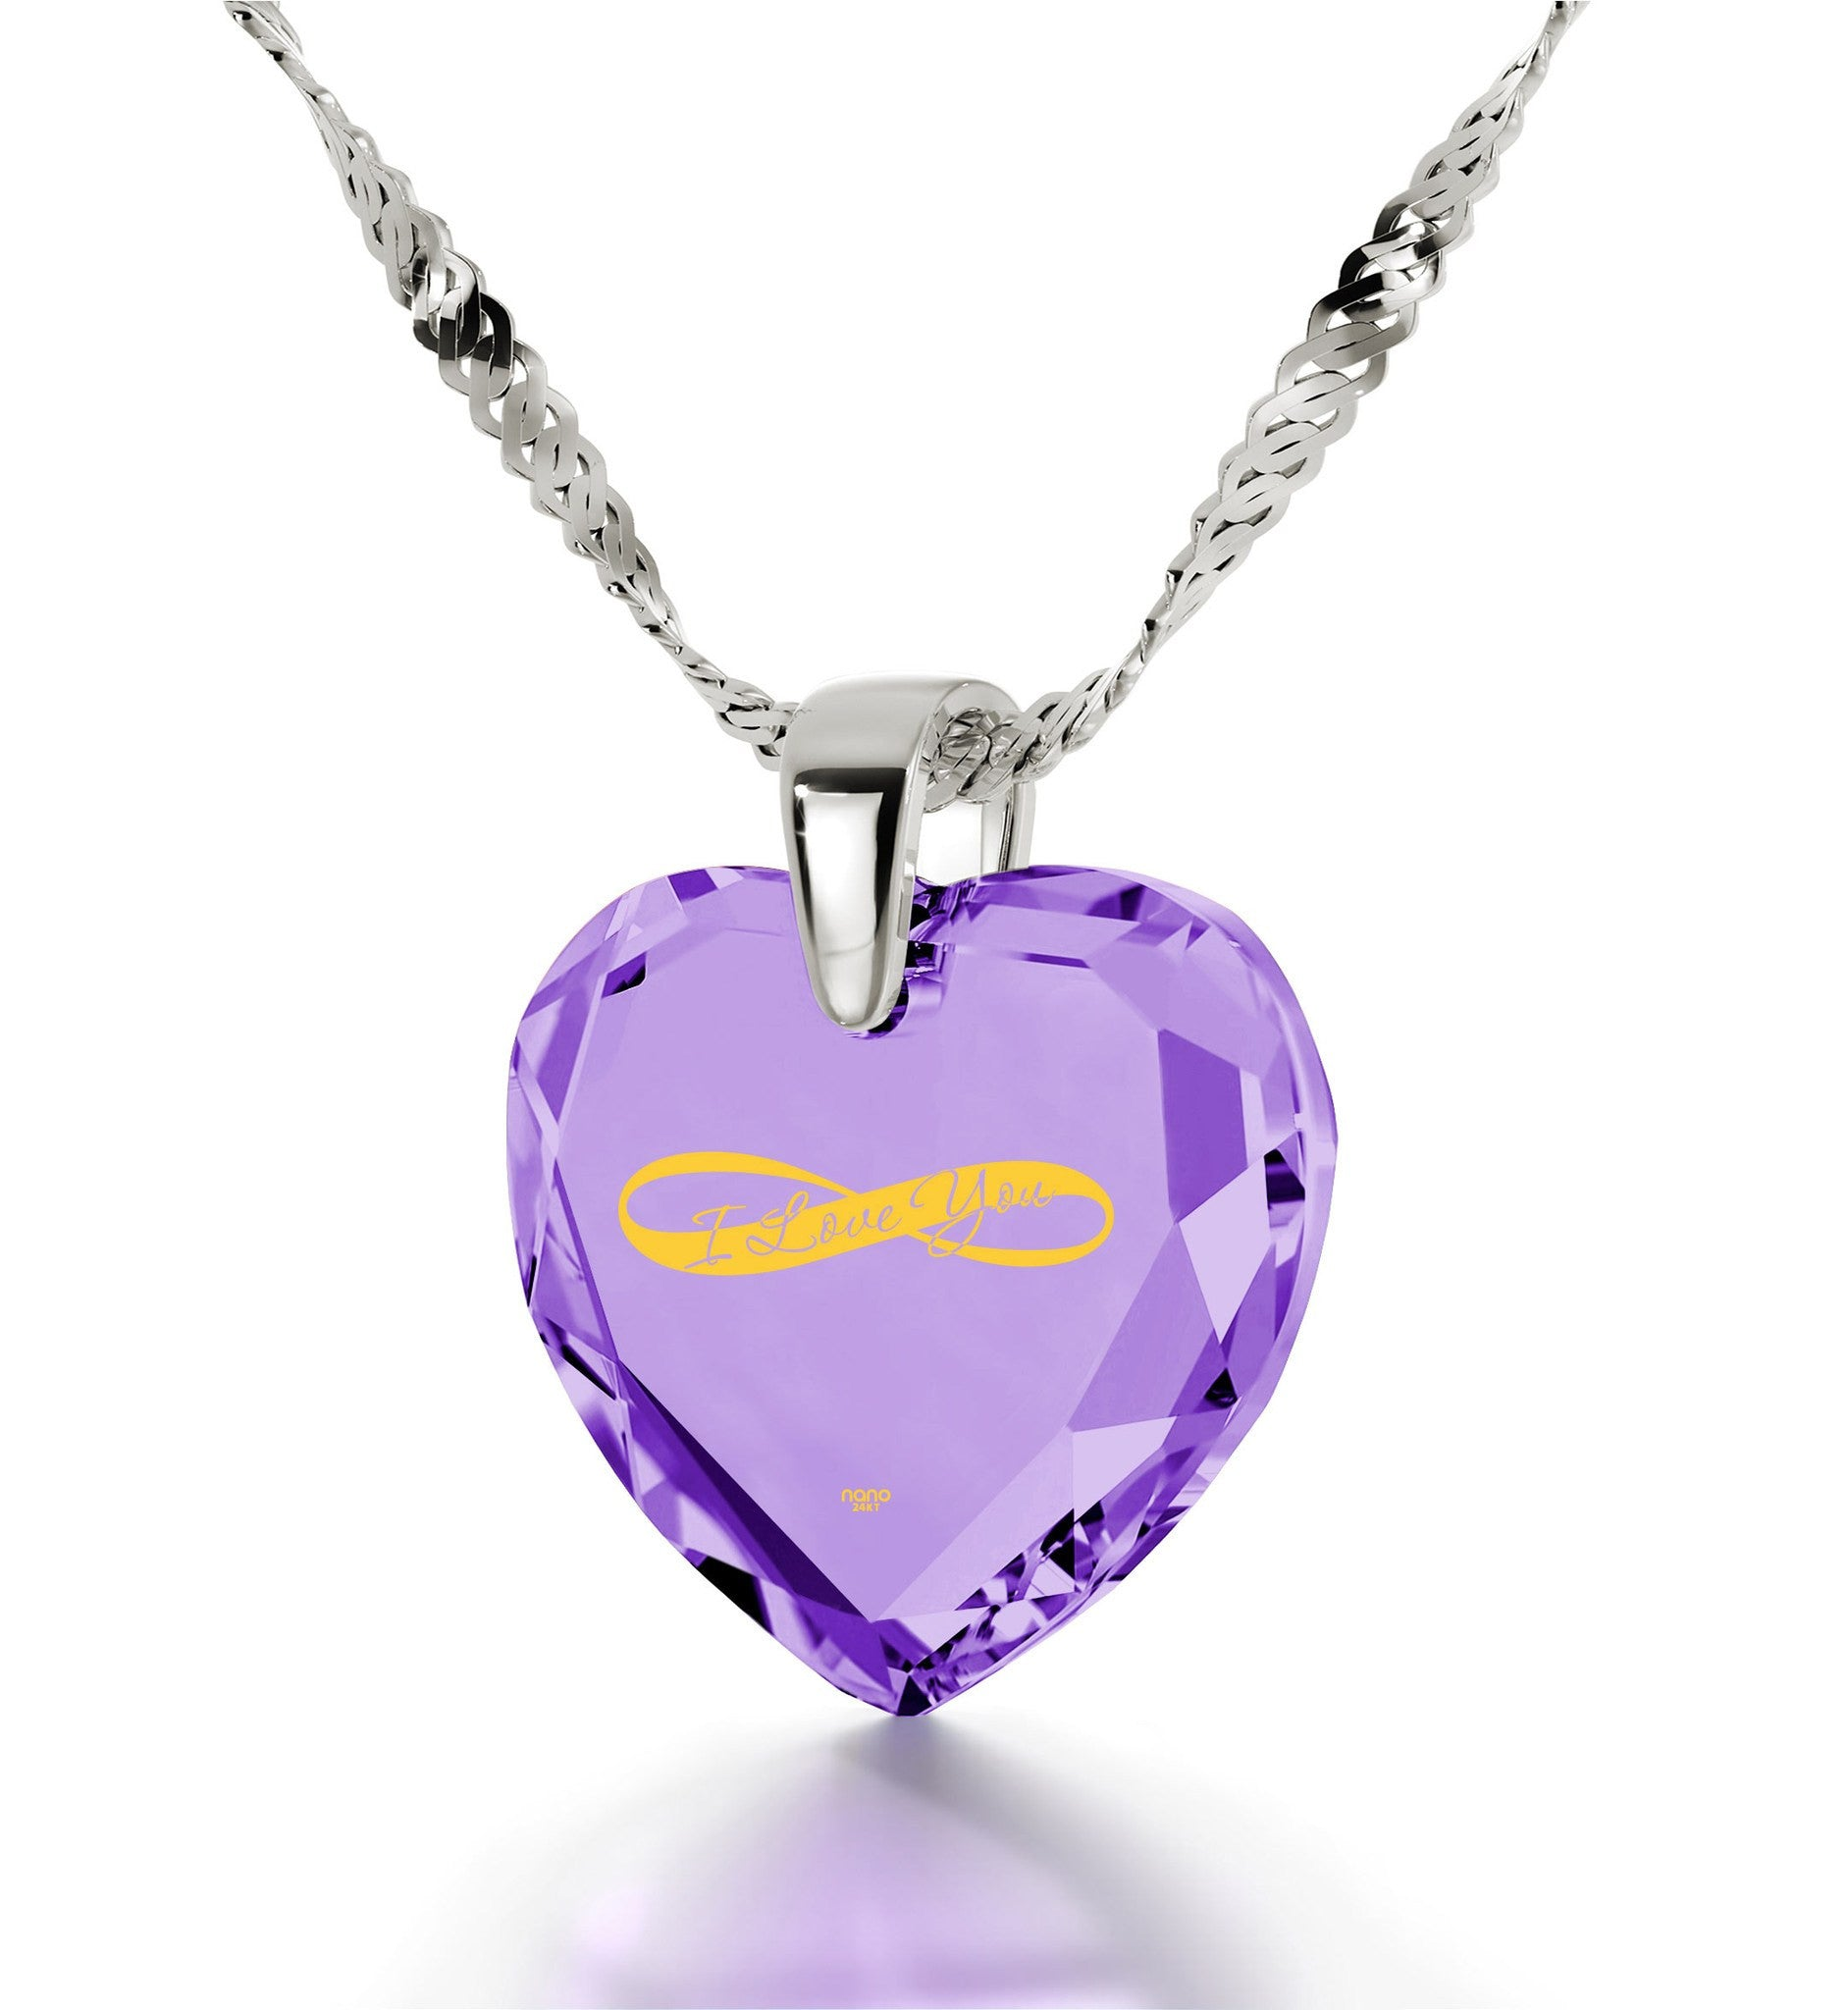 Cute Christmas Gifts for Girlfriend, Light Amethyst, Sterling Silver Necklace,Xmas Ideas for Wife, by Nano Jewelry